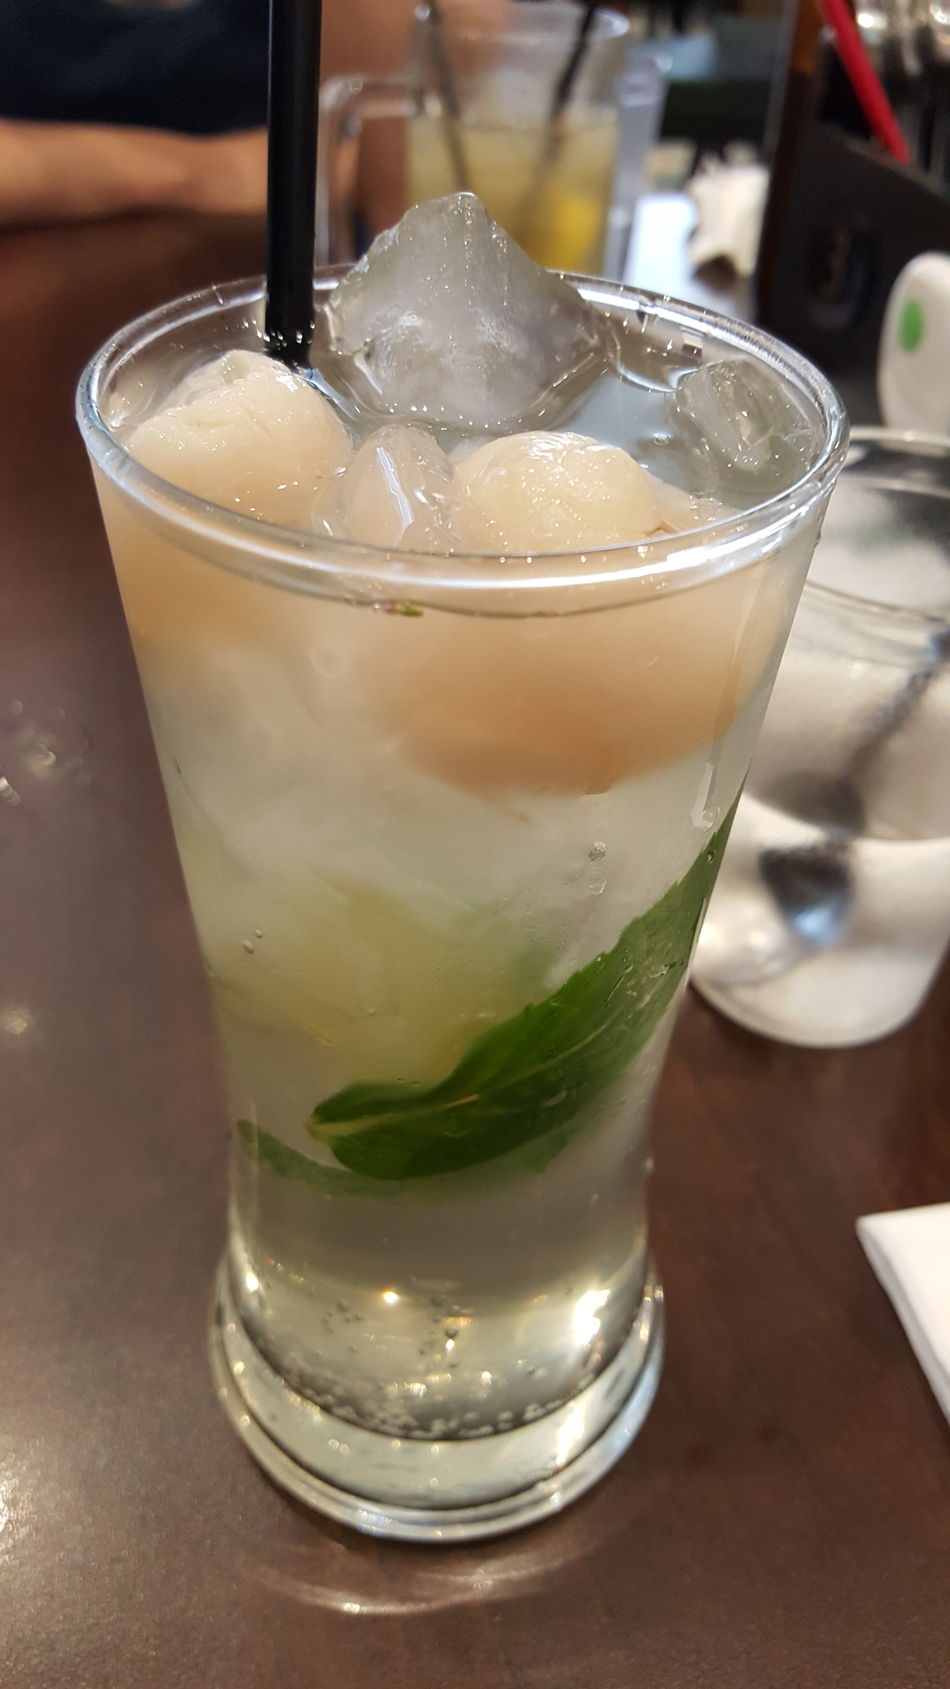 Lychee Soda Refreshing Summertime Papa Rich Northbridge Malaysian Food Drinks